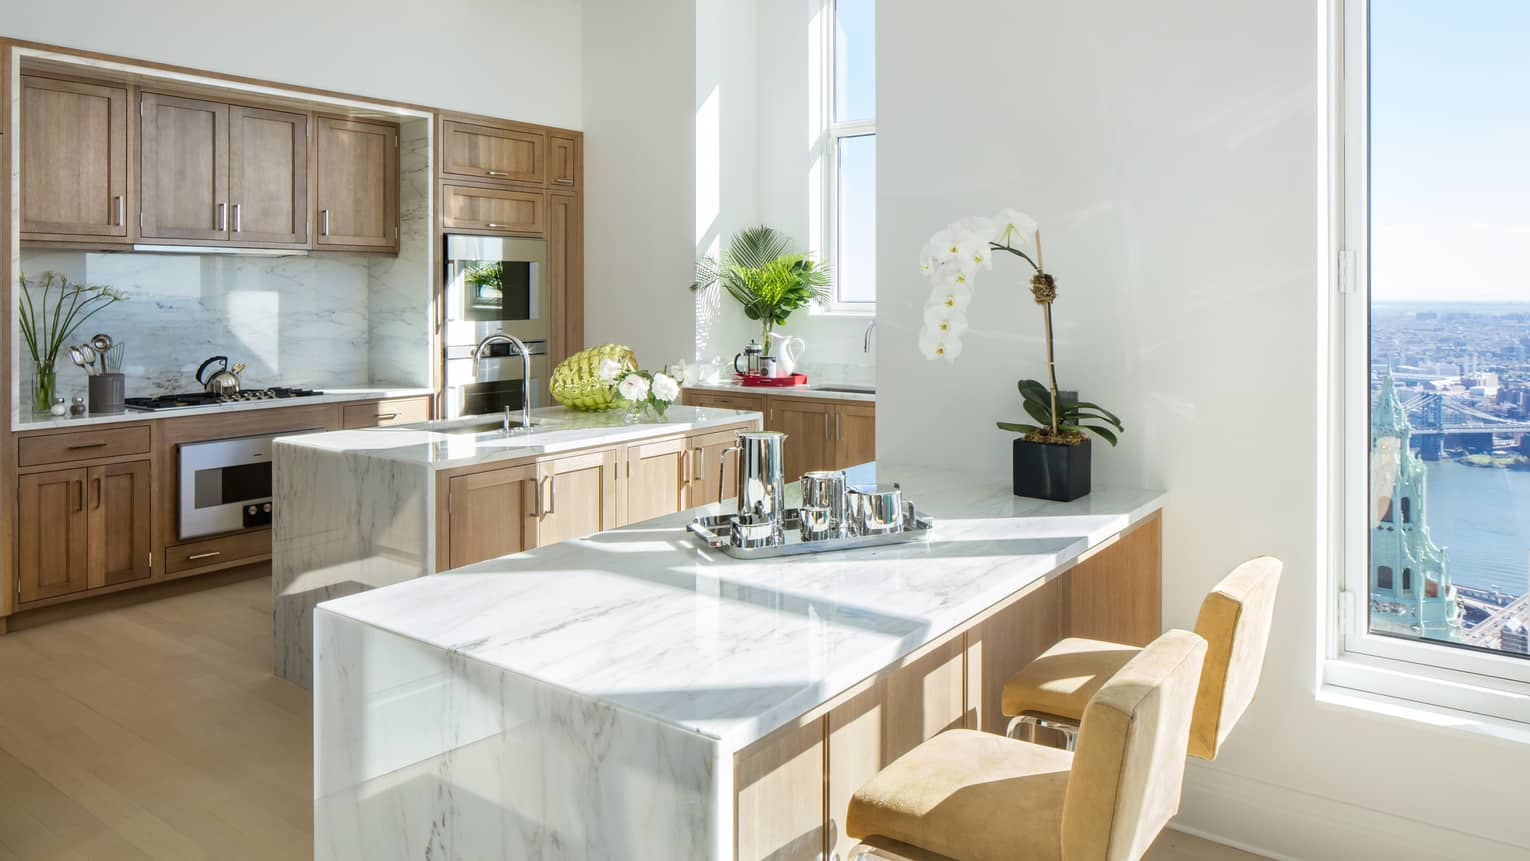 Kitchen island with Colorado White marble countertops and stools, solid oak cabinets, fresh white orchids